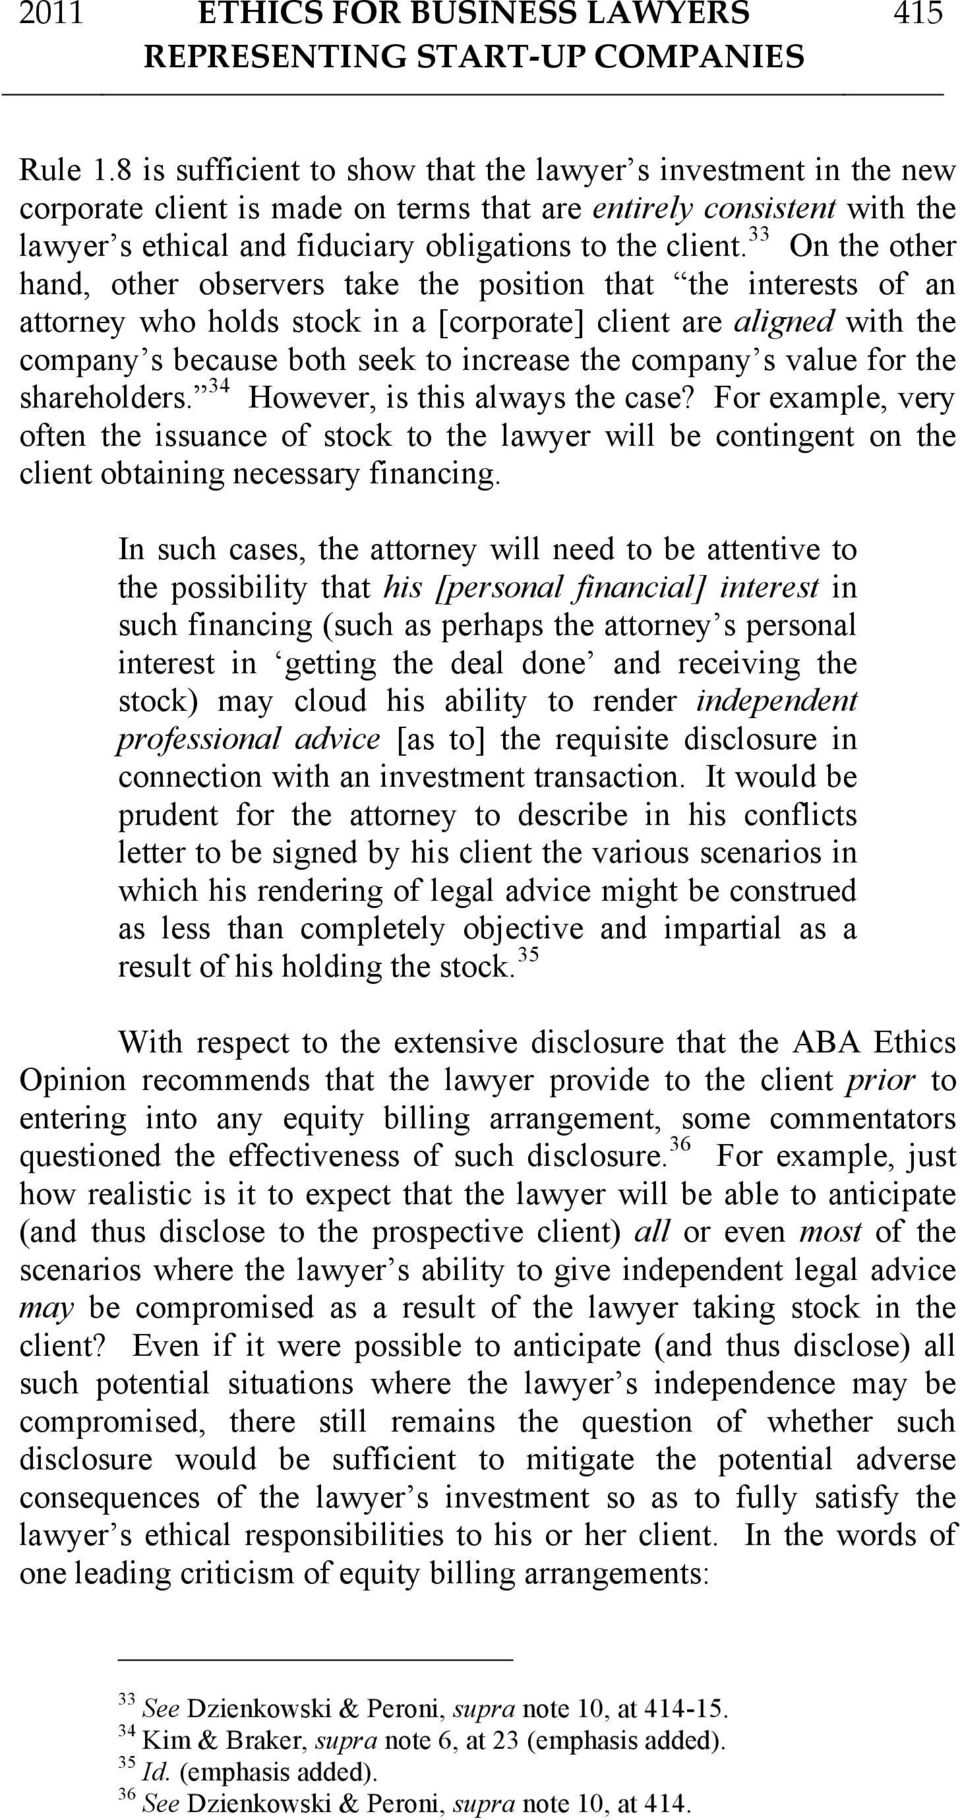 33 On the other hand, other observers take the position that the interests of an attorney who holds stock in a [corporate] client are aligned with the company s because both seek to increase the